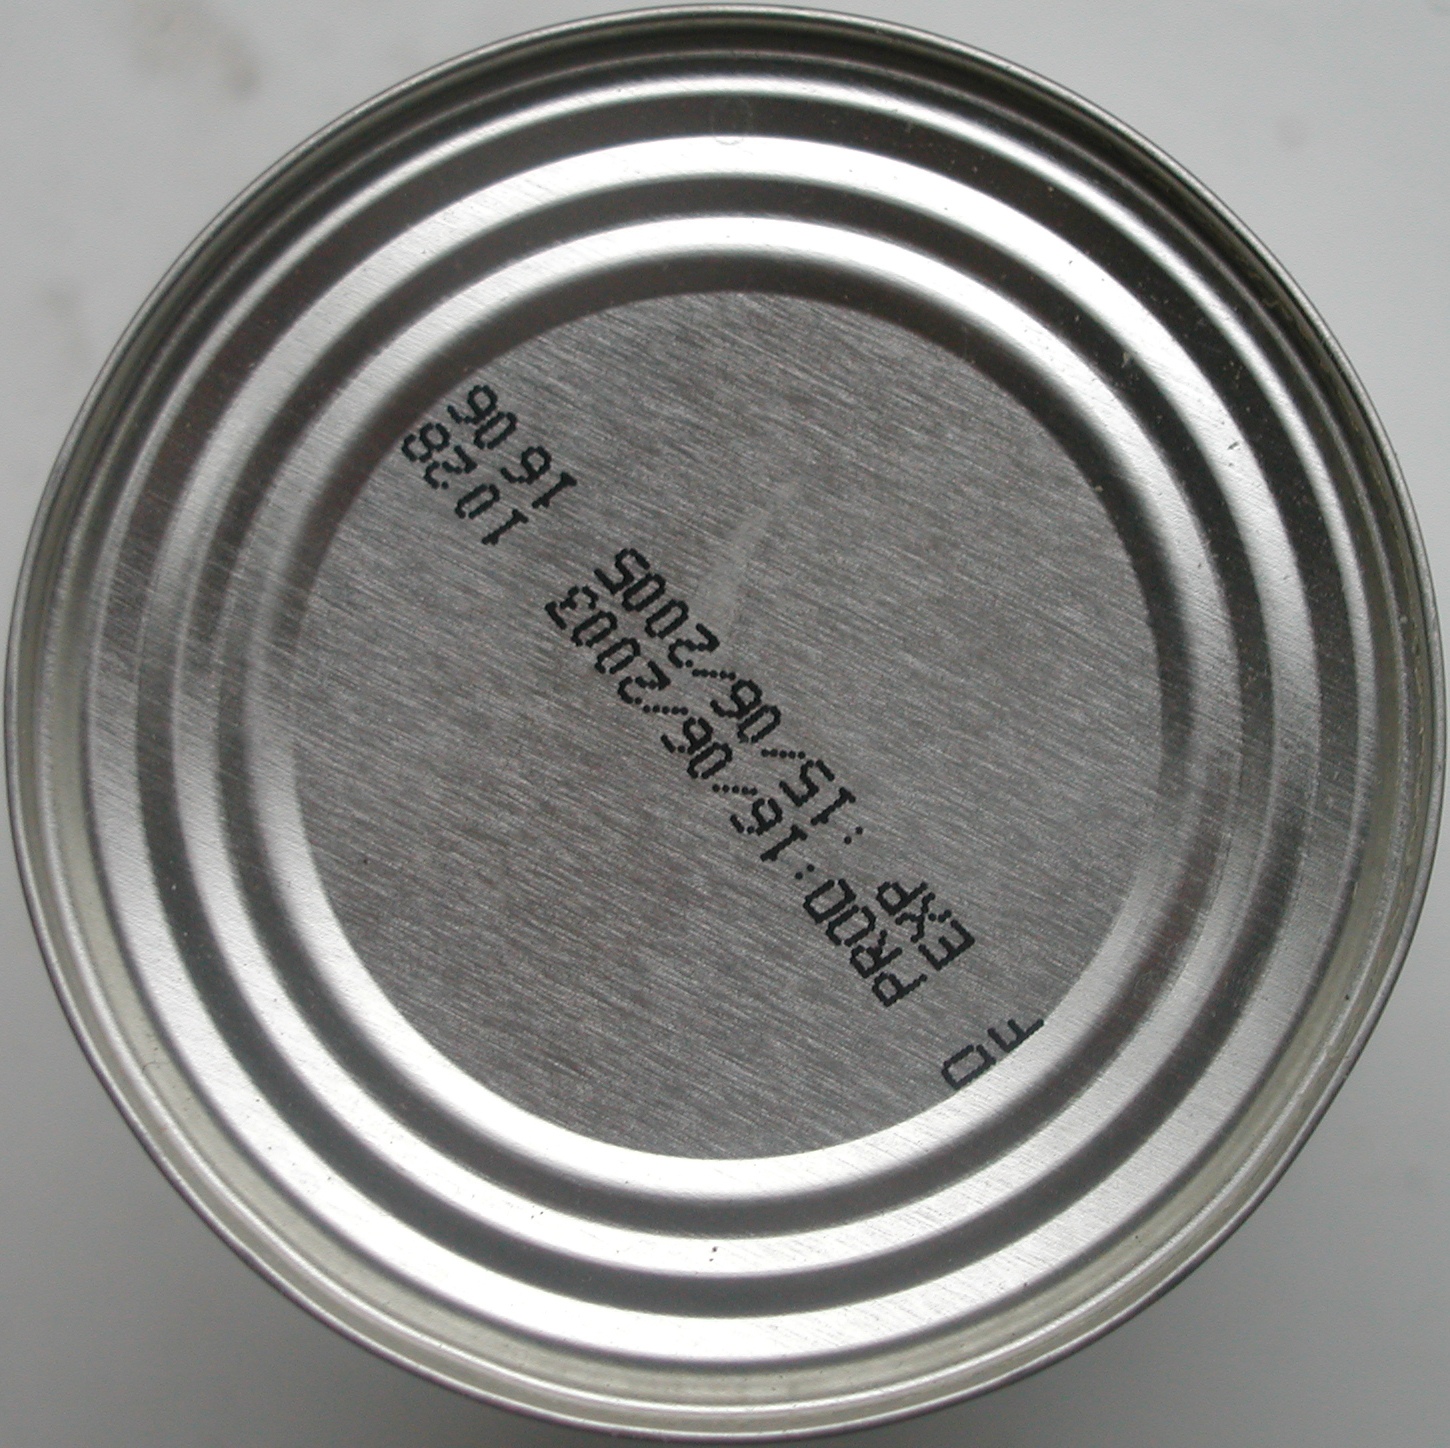 tabus tin can top bottom round rounded circle